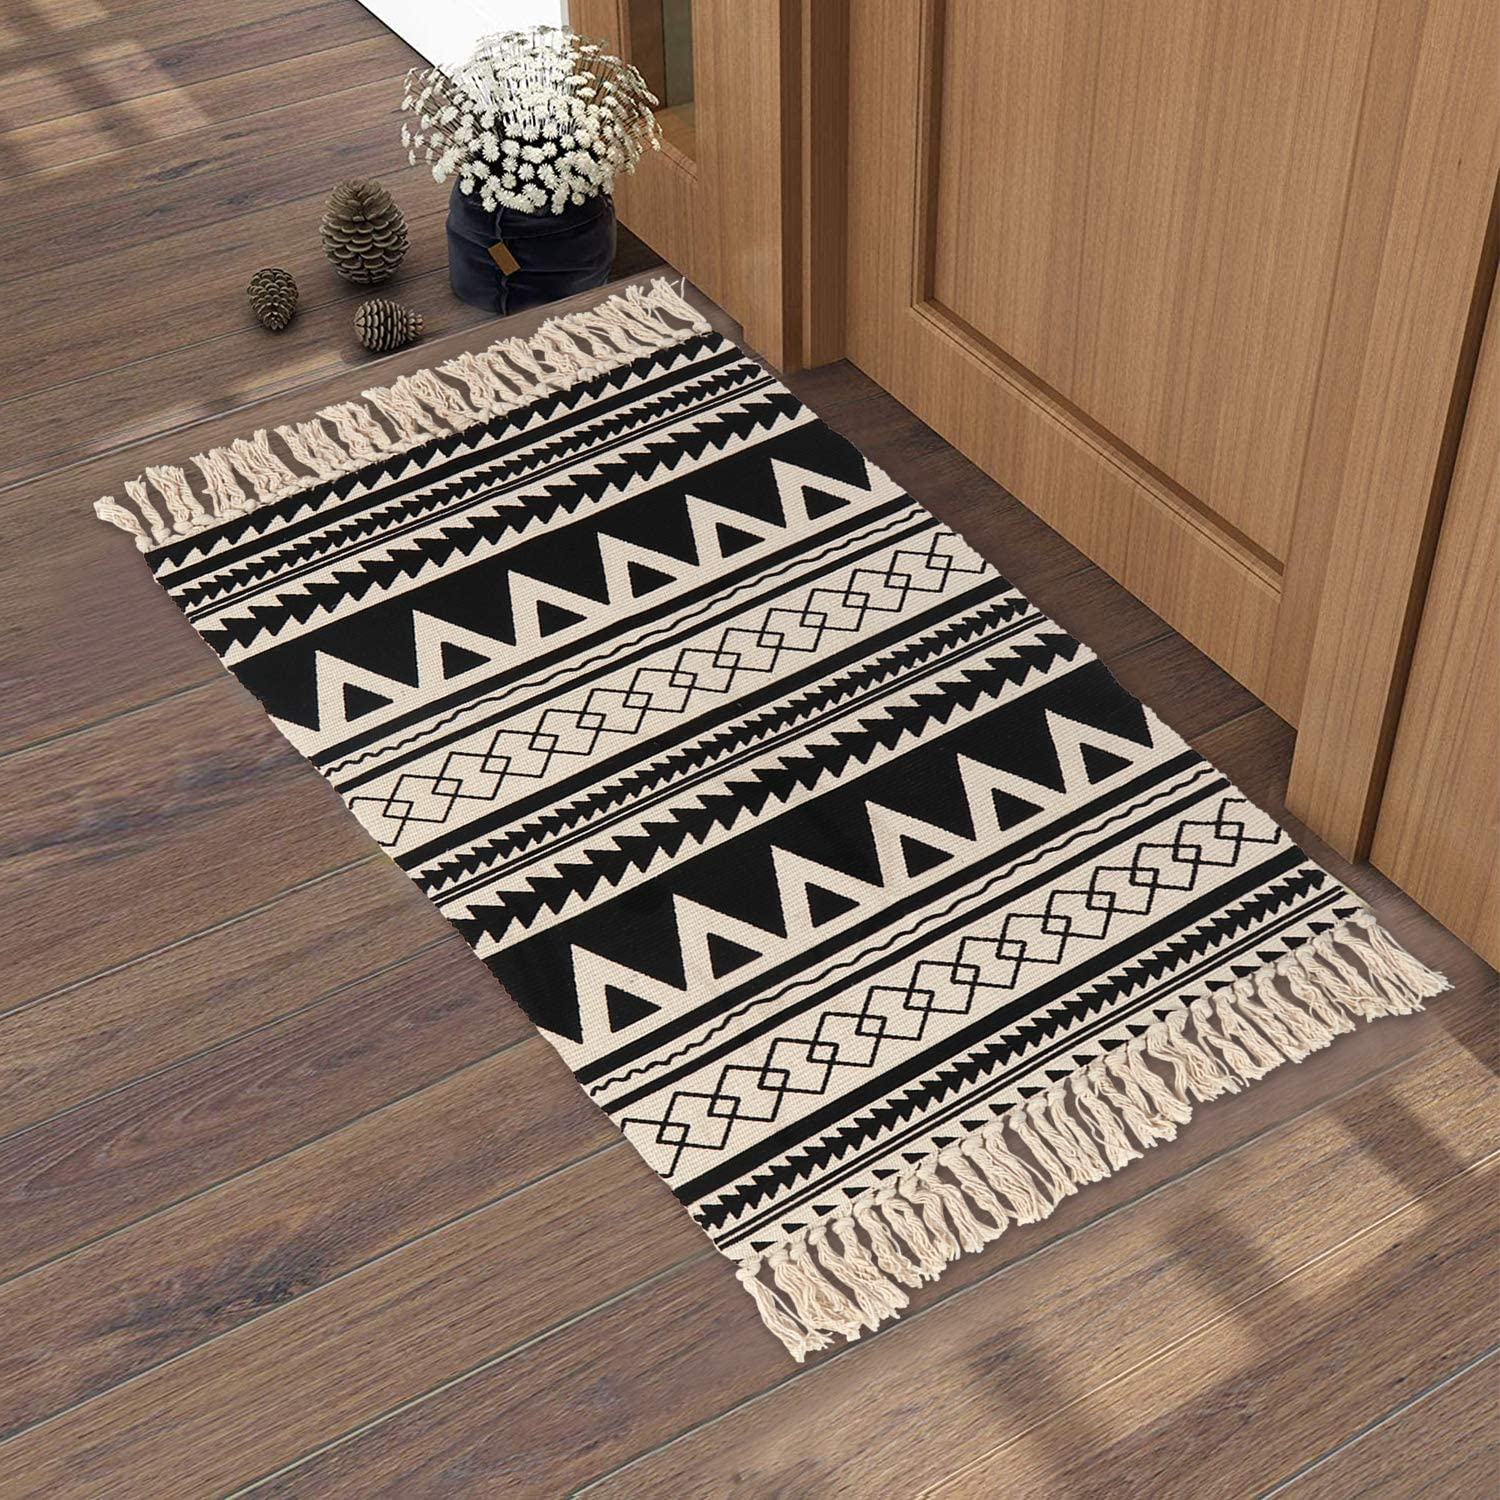 Amazon Com Cotton Woven Rug 2 X 3 Kimode Farmhouse Small Tassels Throw Area Rug Moroccan Washable Fringe Rug Runner For Bathroom Kitchen Bedroom Laundry Doorway Black Kitchen Dining